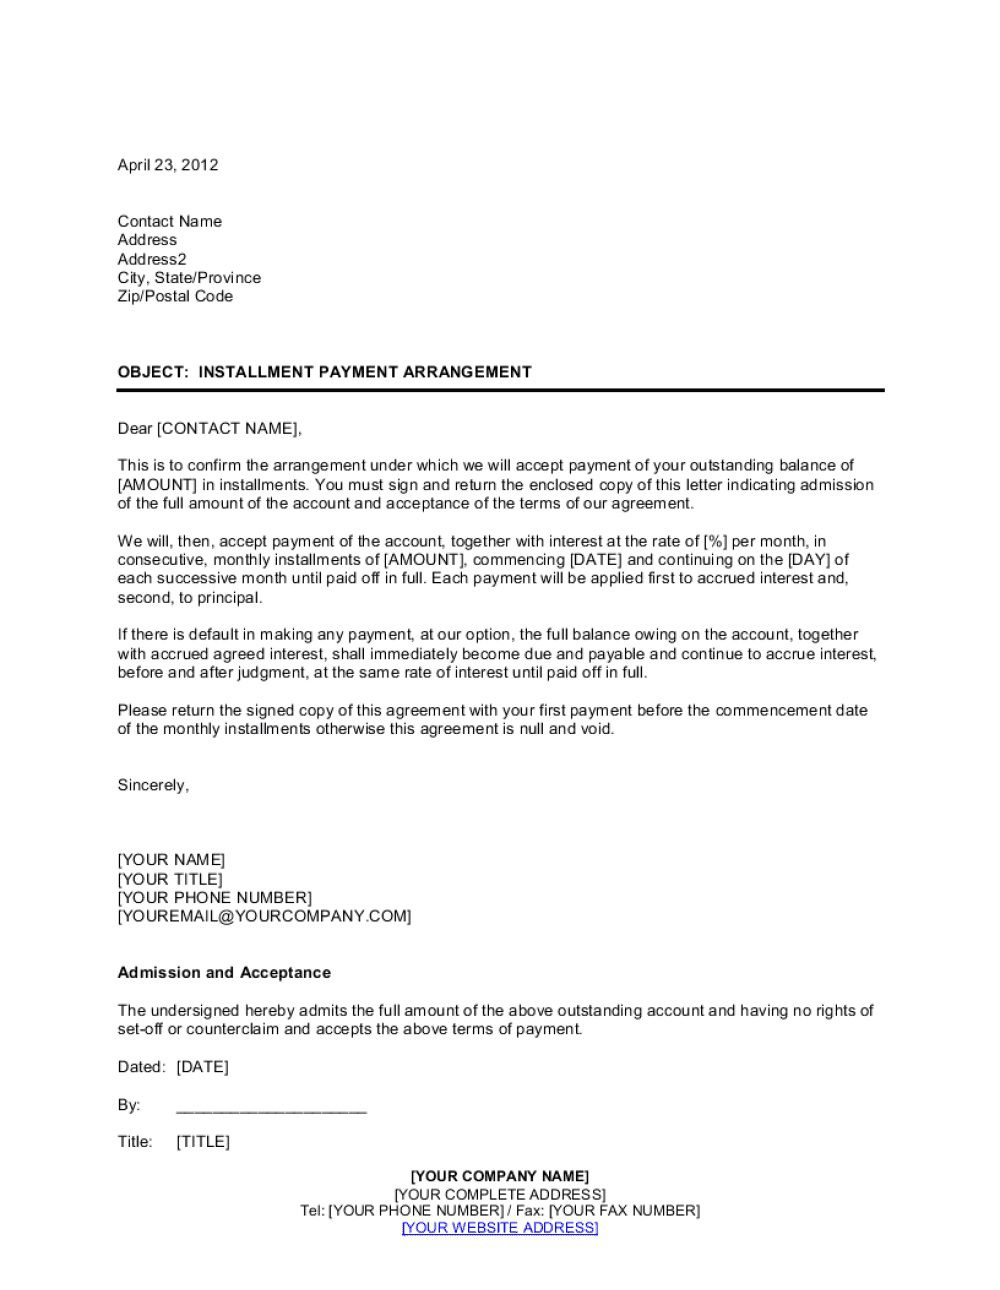 002 Simple Installment Payment Contract Template High Resolution  Car Agreement MonthlyFull